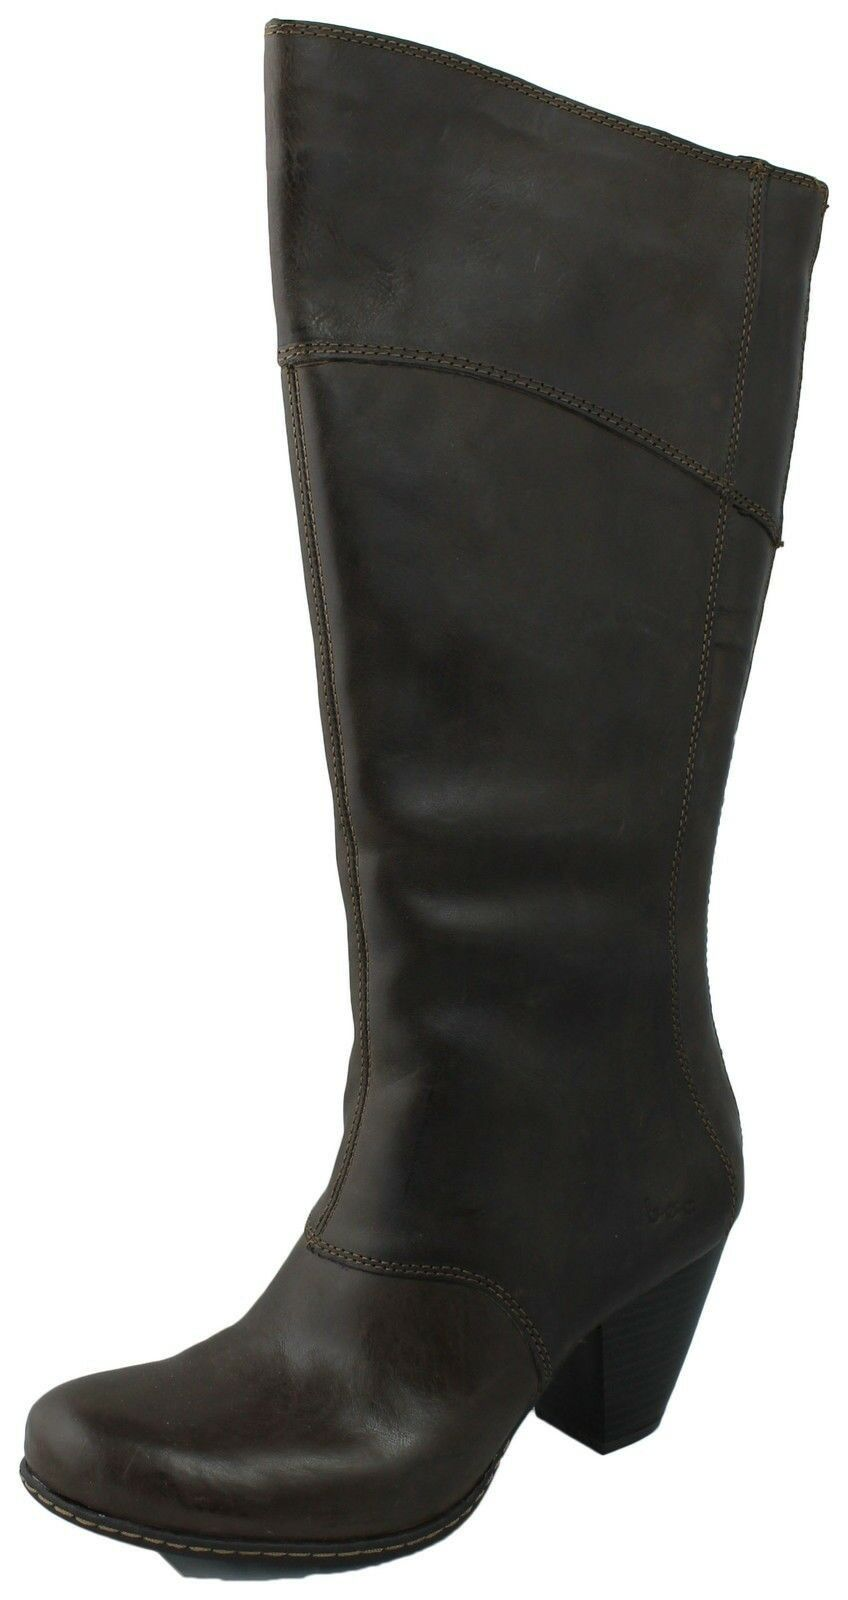 B.O.C. by Born Women's Spanya Chocolate Leather Boots